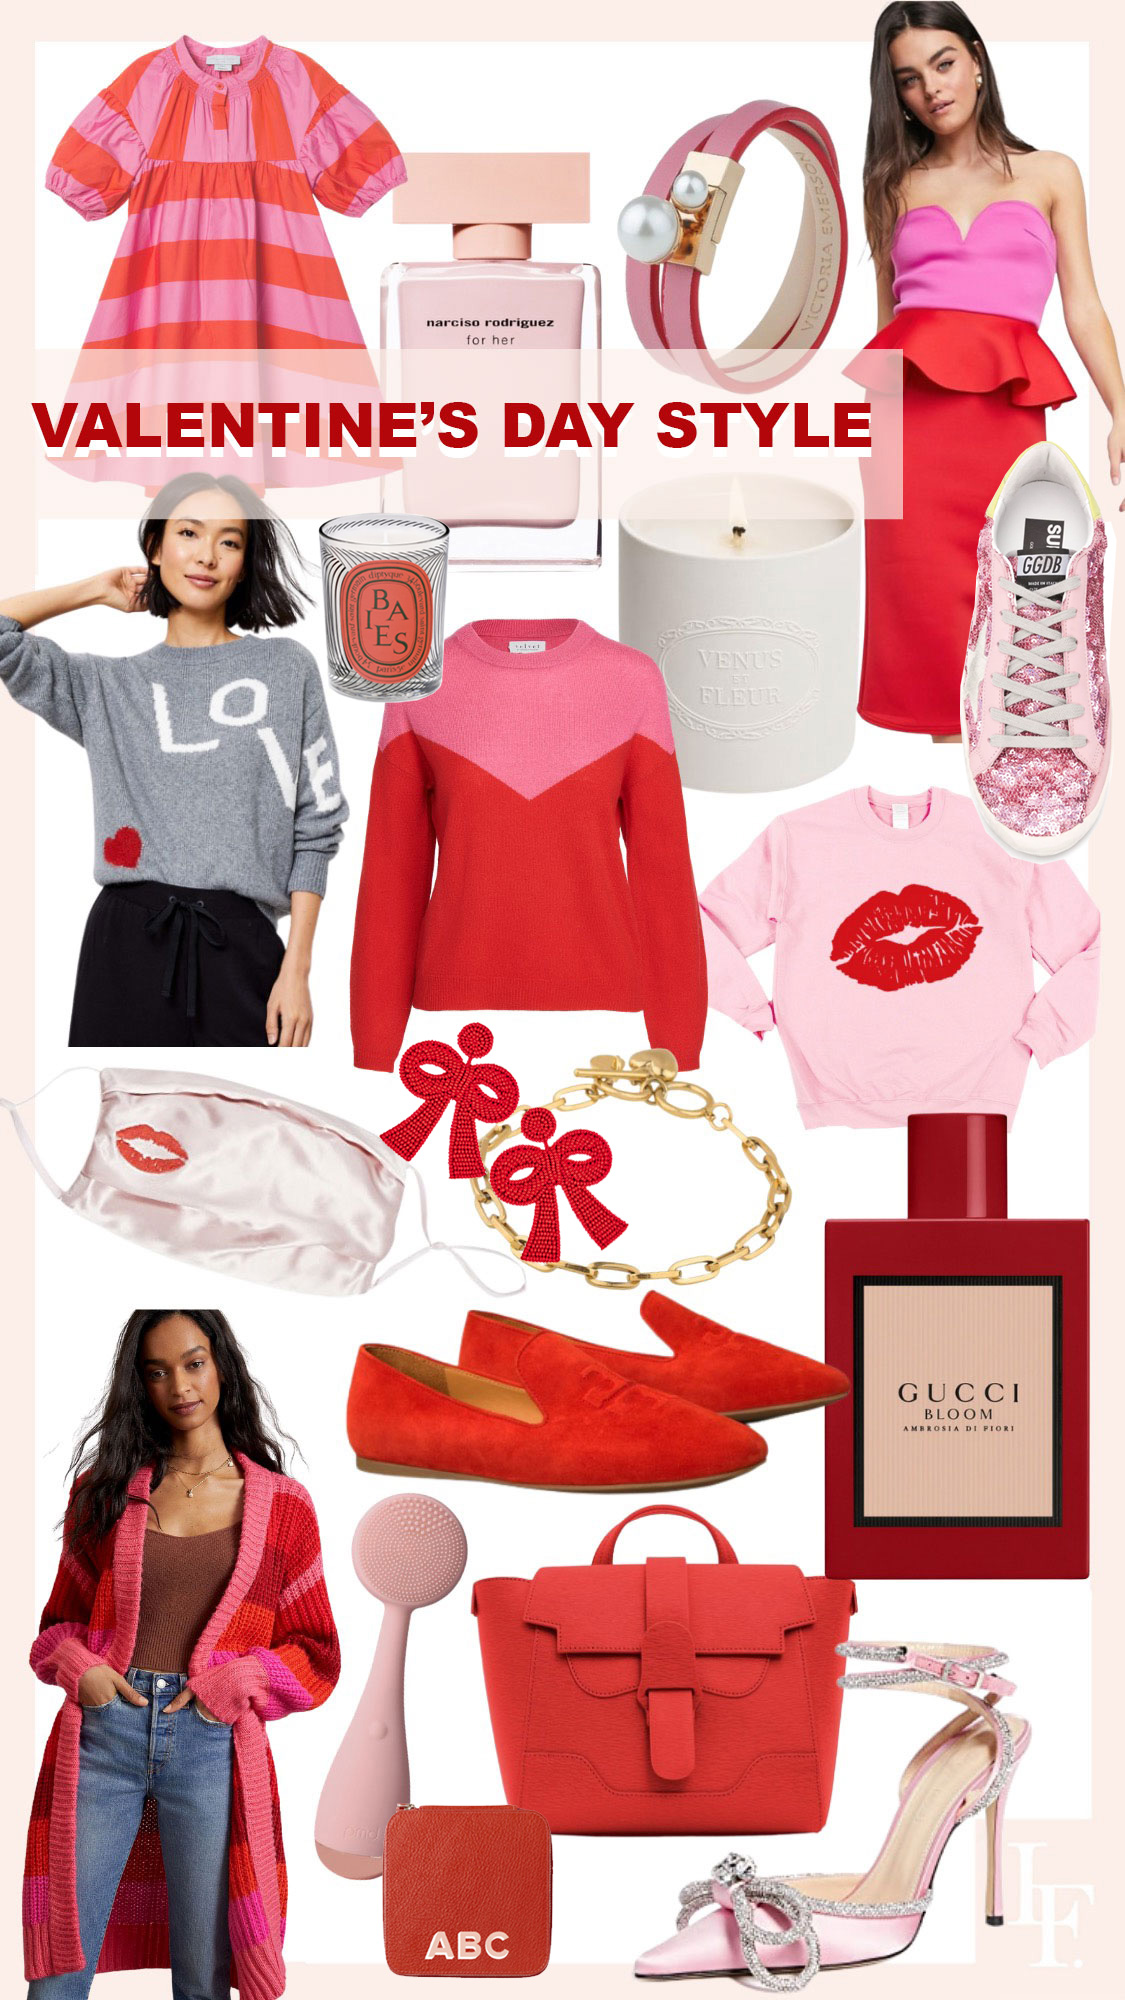 Best gifts and fashion for Valentine's Day 2021, by fashion blogger Lombard & Fifth Veronica Levy.